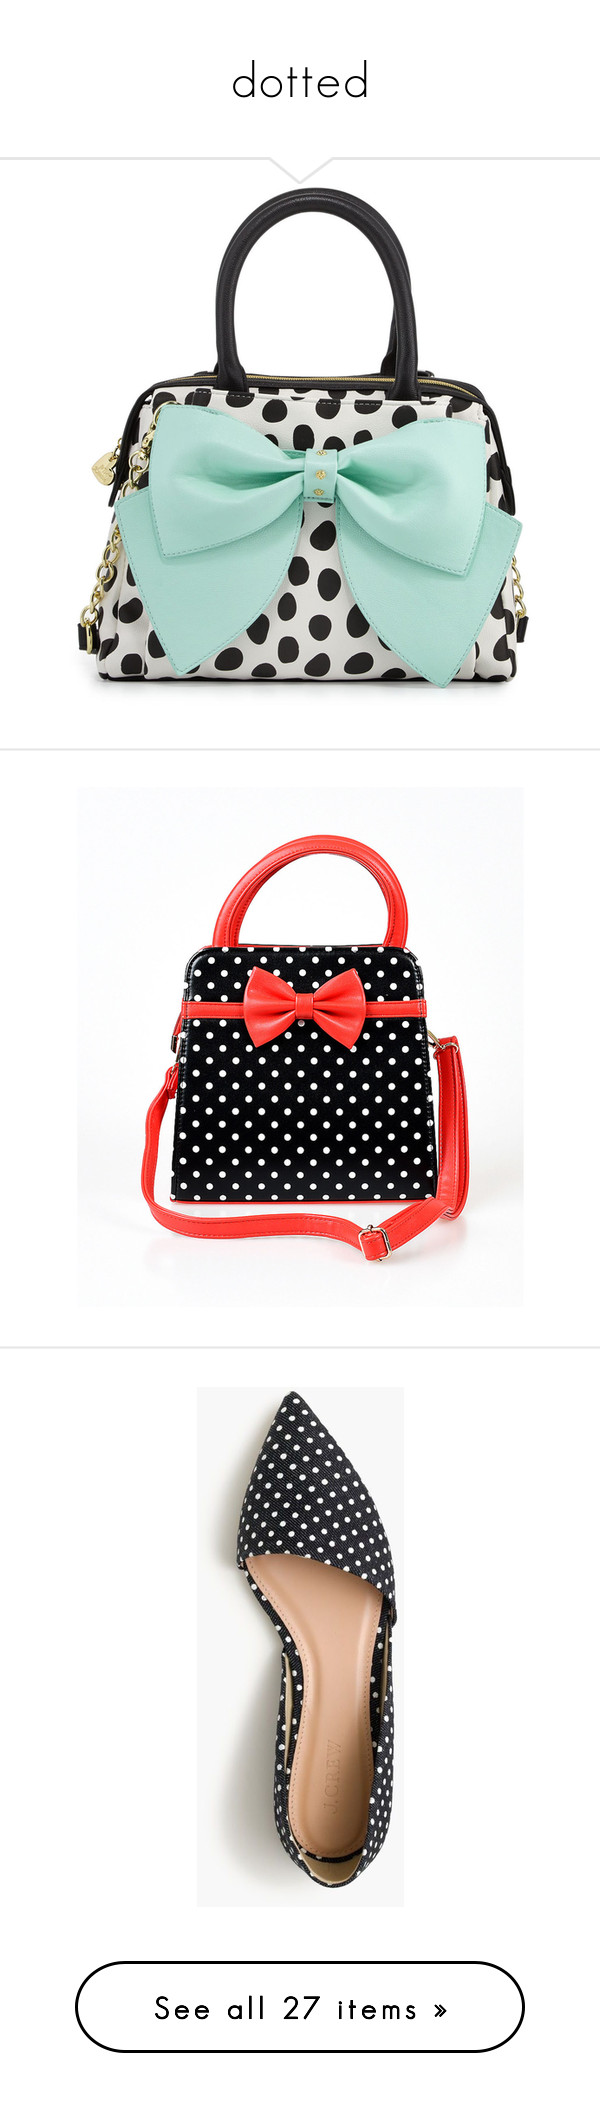 """dotted"" by bluemoon ❤ liked on Polyvore featuring bags, handbags, blue, yellow, man bag, purse satchel, polka dot handbags, handbag purse, blue handbags and purses"